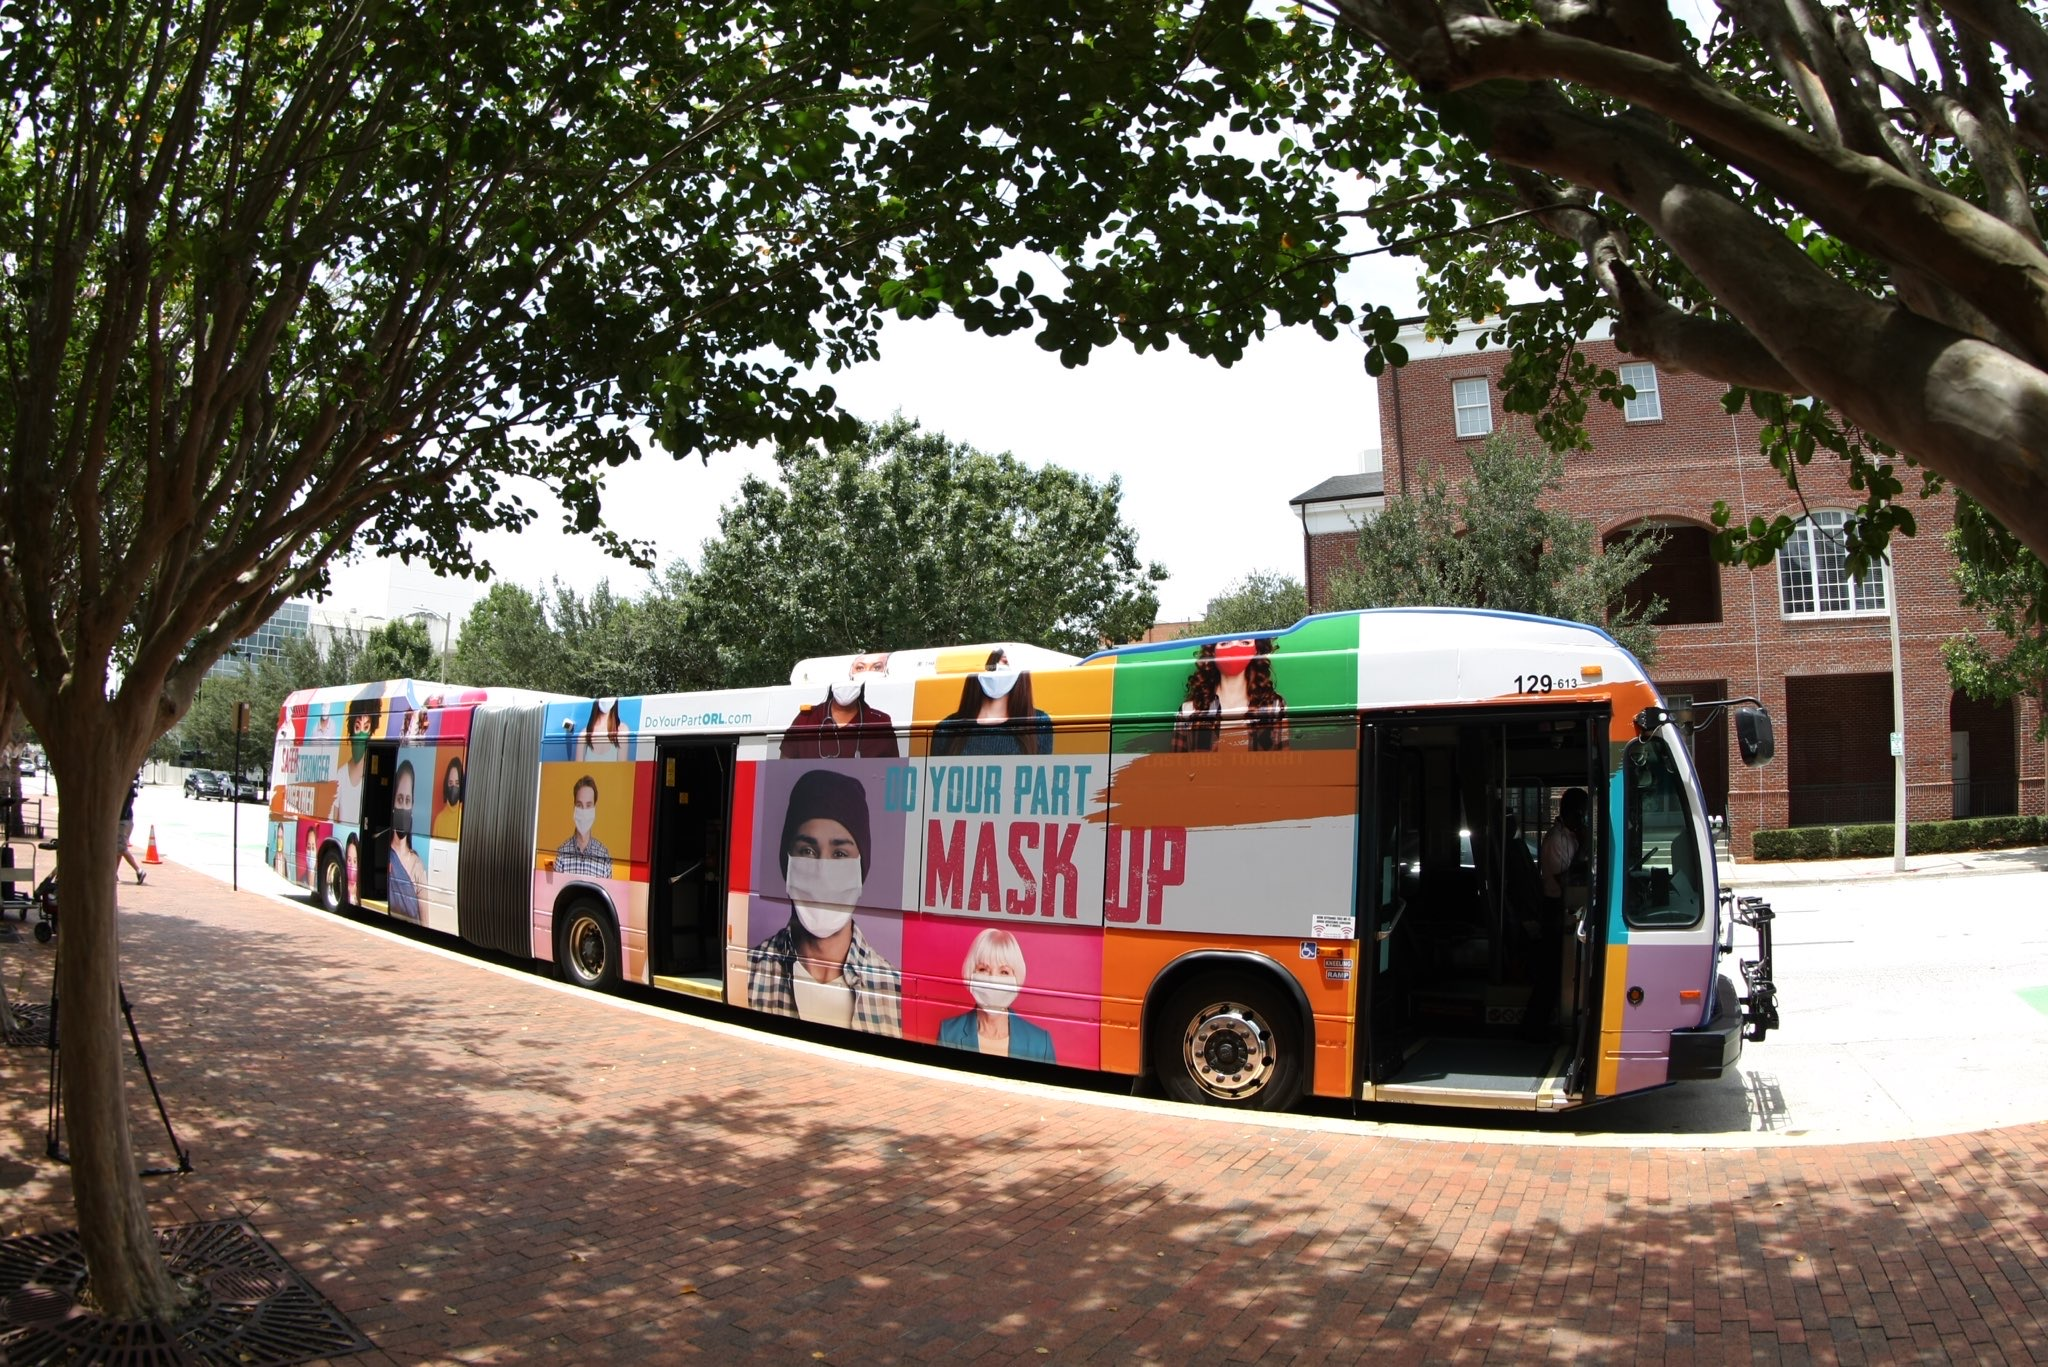 Large LYNX bus wrapped with an advertisement for the Safer, Stronger, Together campaign